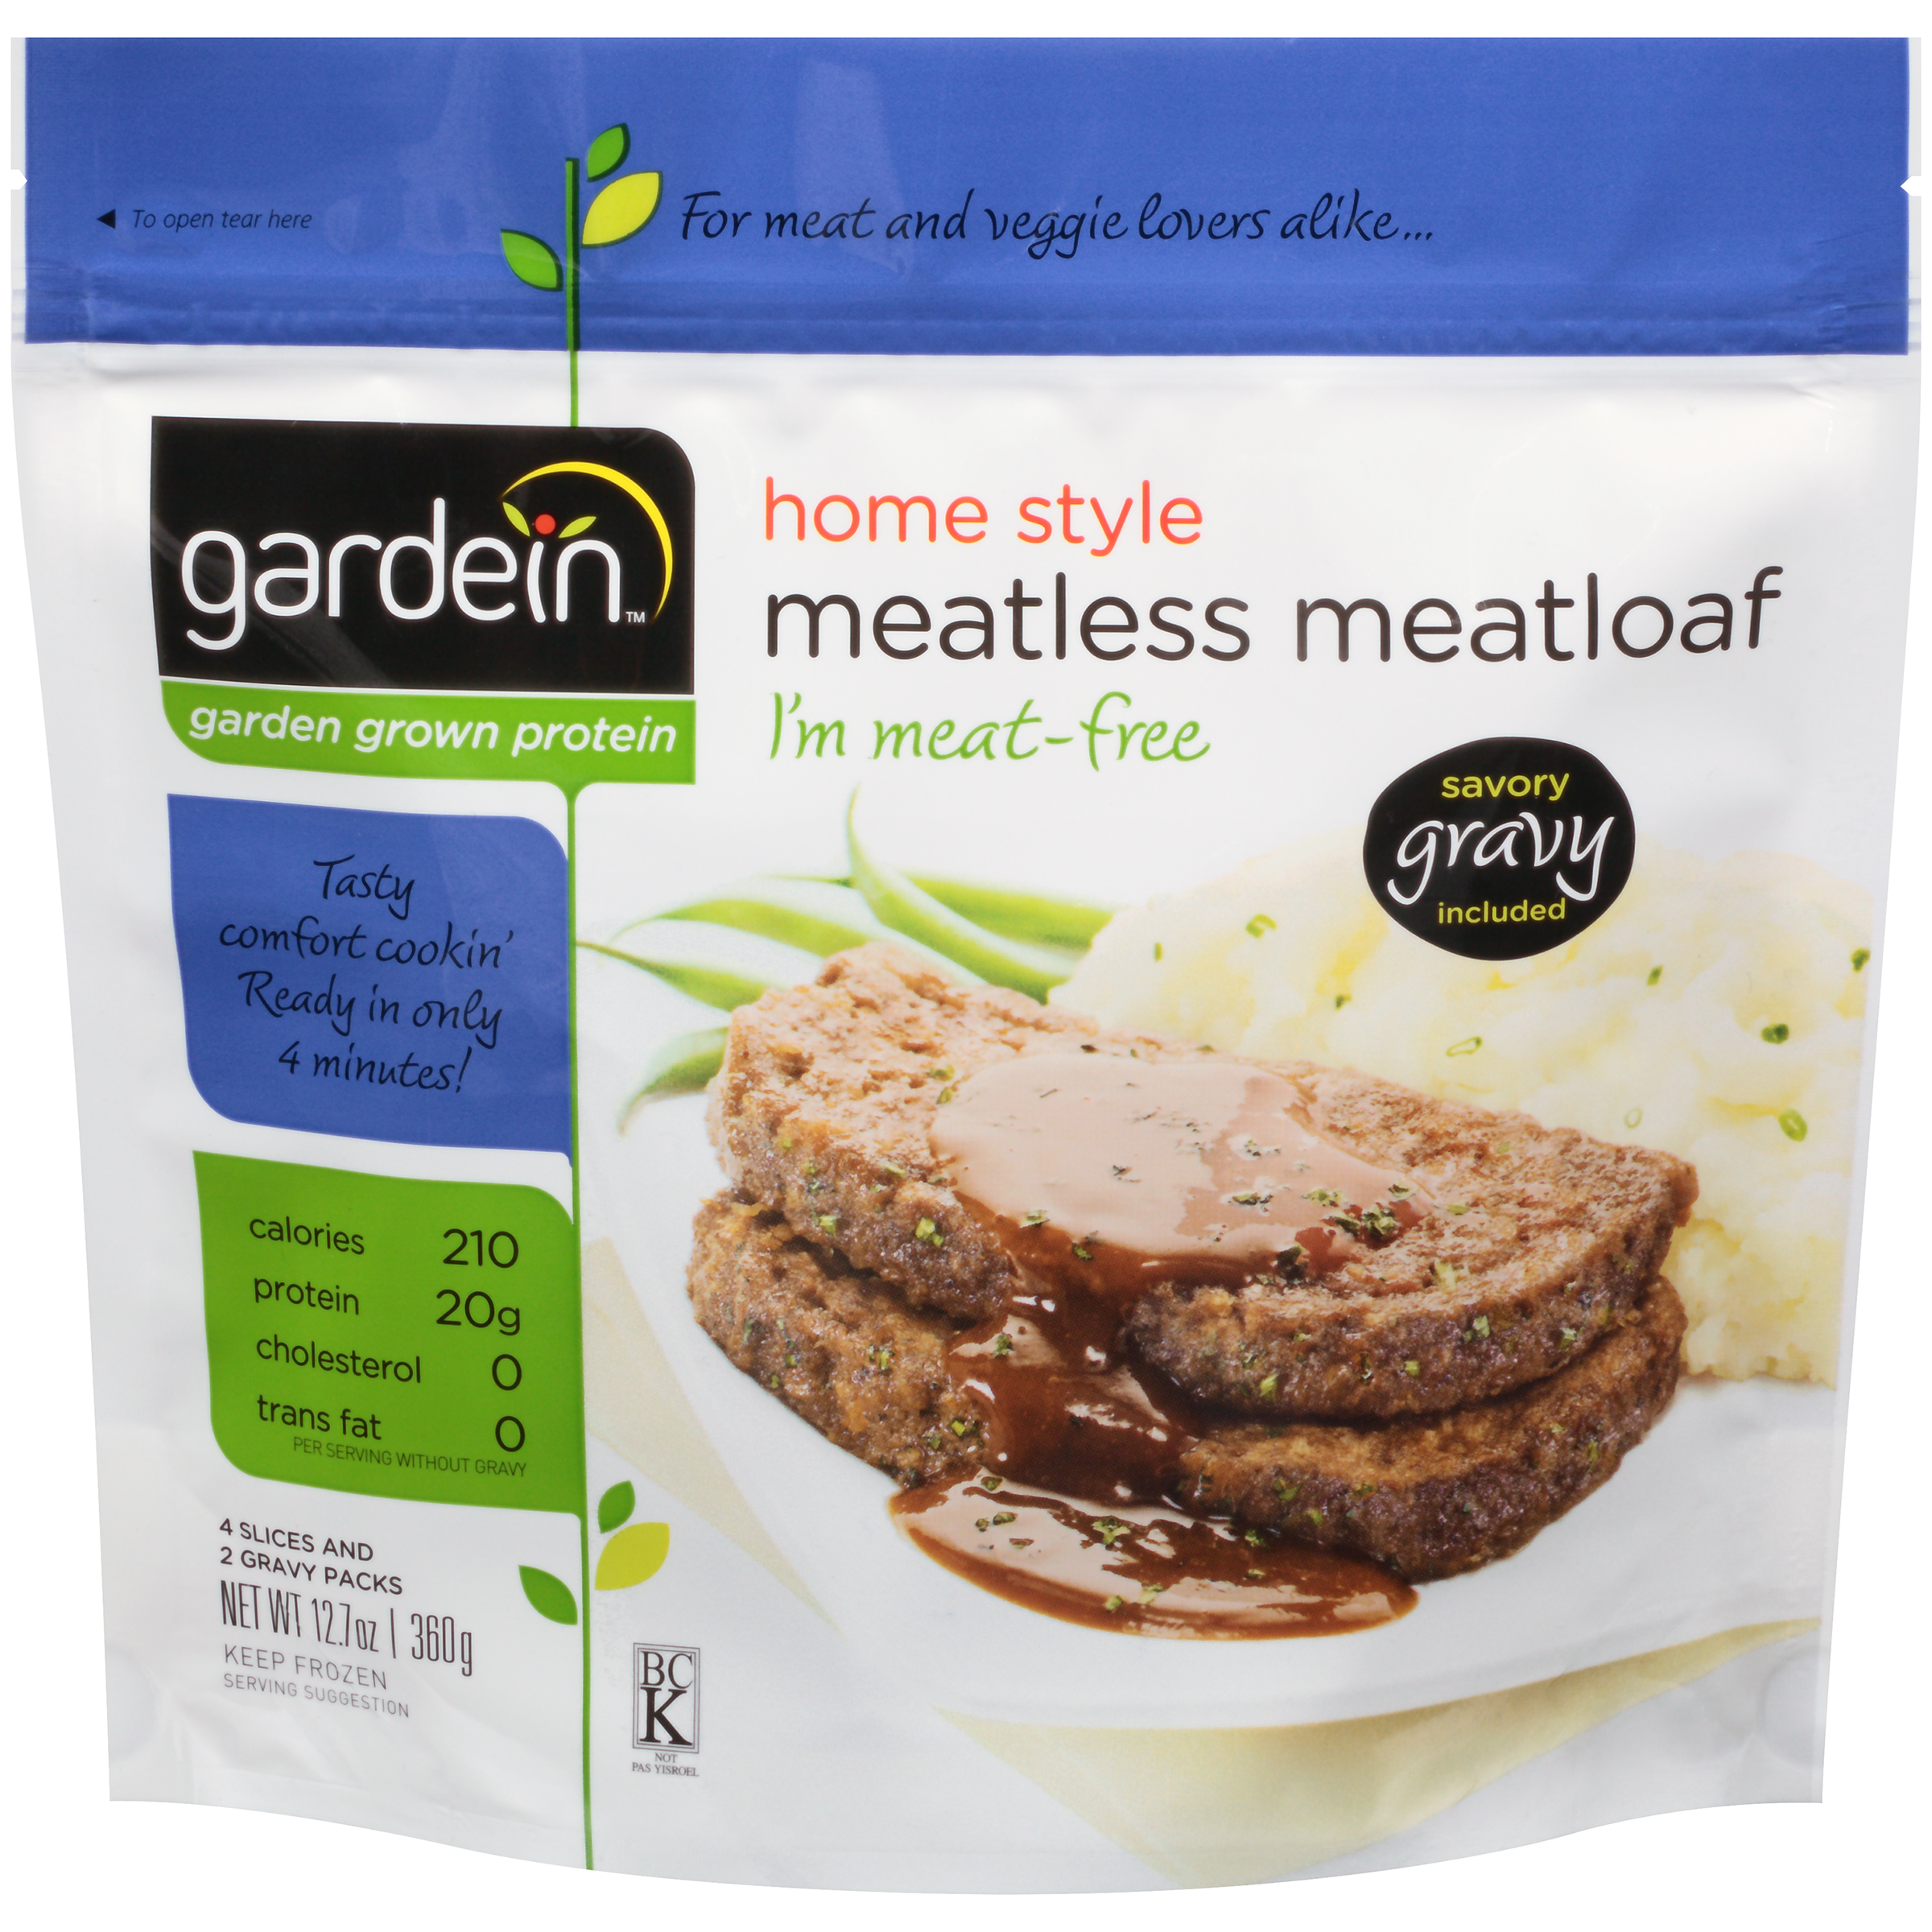 Gardein™ Home Style Meatless Meatloaf 4 ct Bag